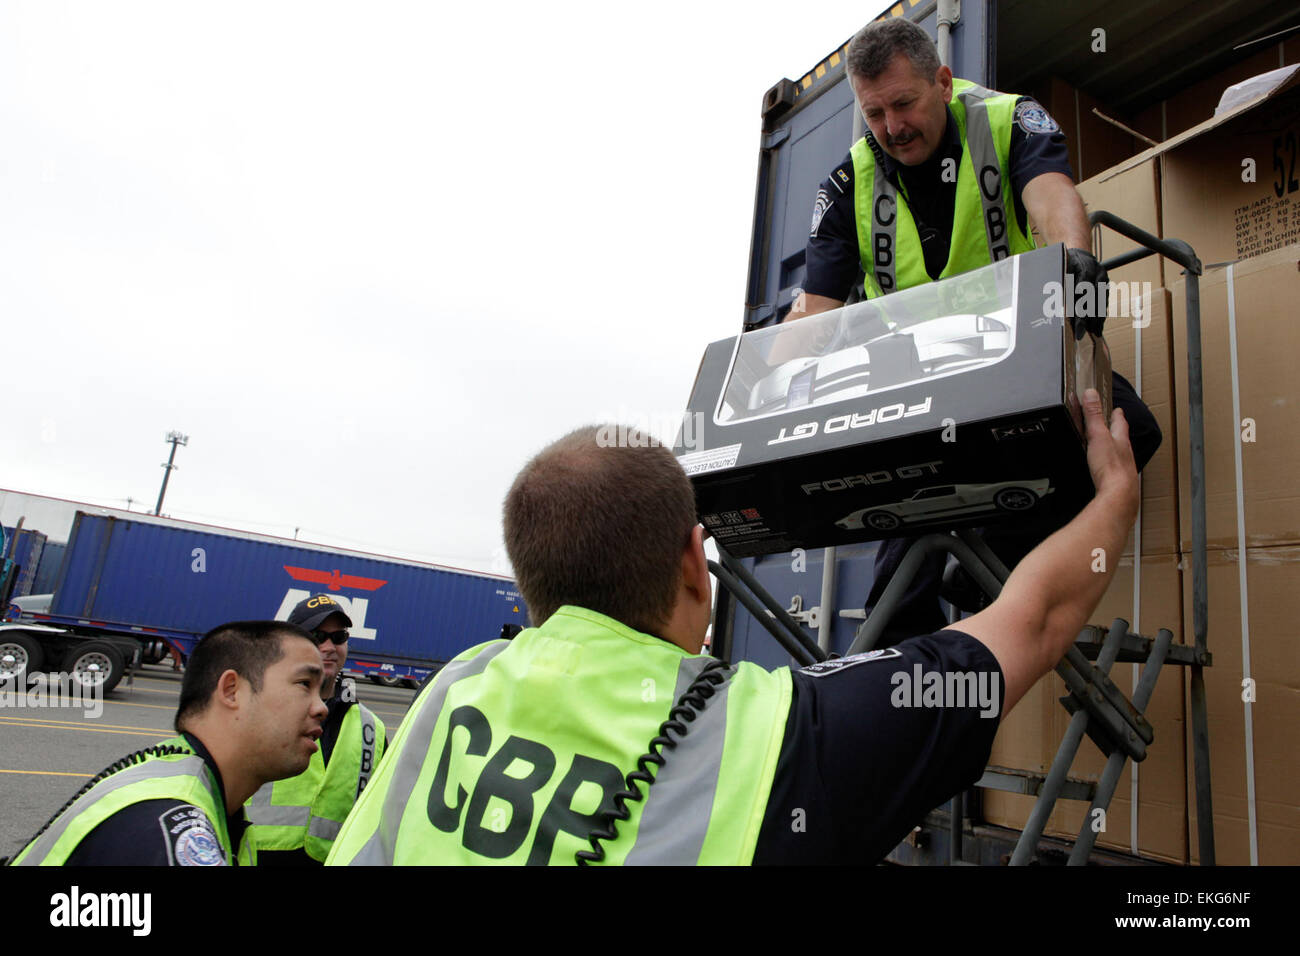 US Customs and Border Protection Field Officers conduct inspection of vehicles at a port of entry in Seattle, Washington. - Stock Image